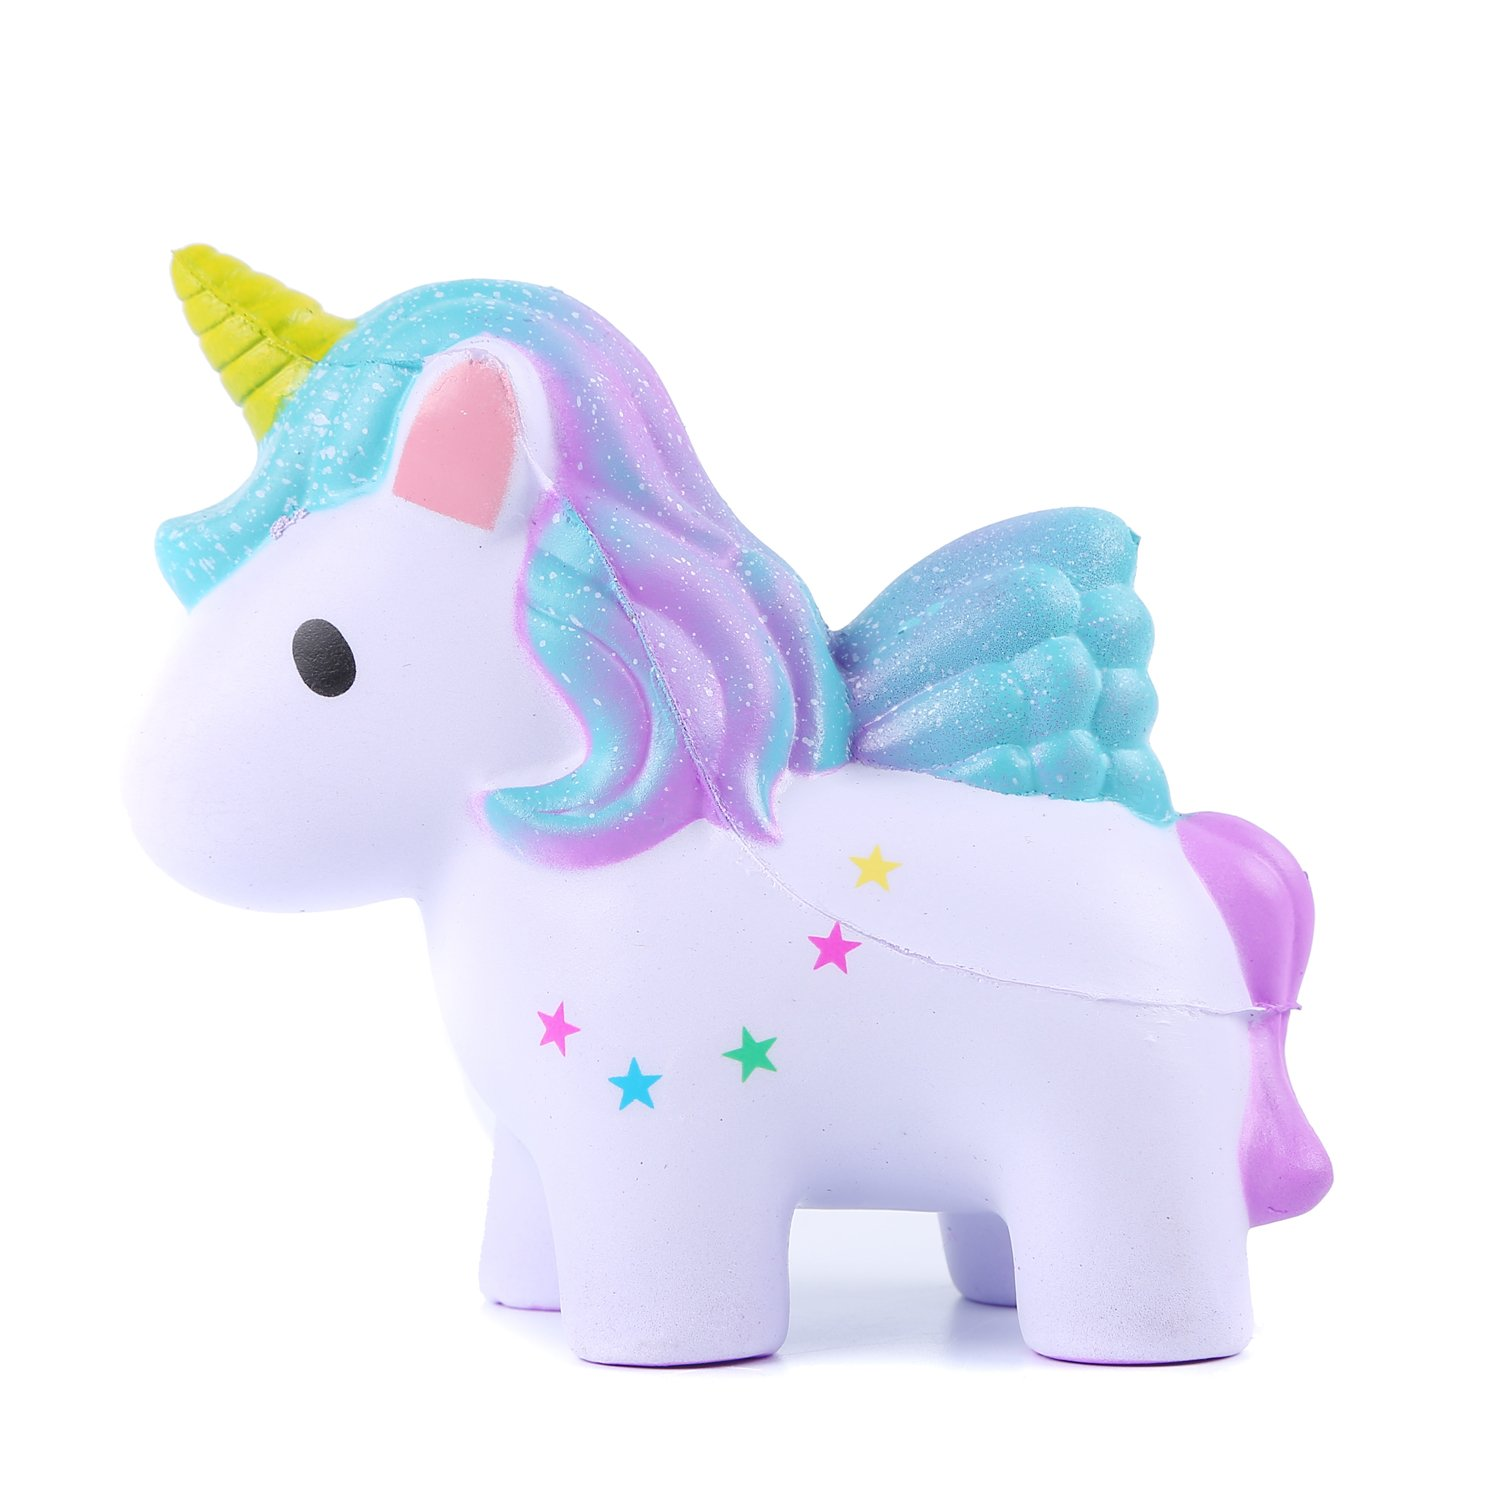 AOLIGE Squishies Slow Rising Jumbo Kawaii Cute Colored Unicorn Creamy Scent for Kids Party Toys Stress Reliever Toy MiaoZhen AB-116